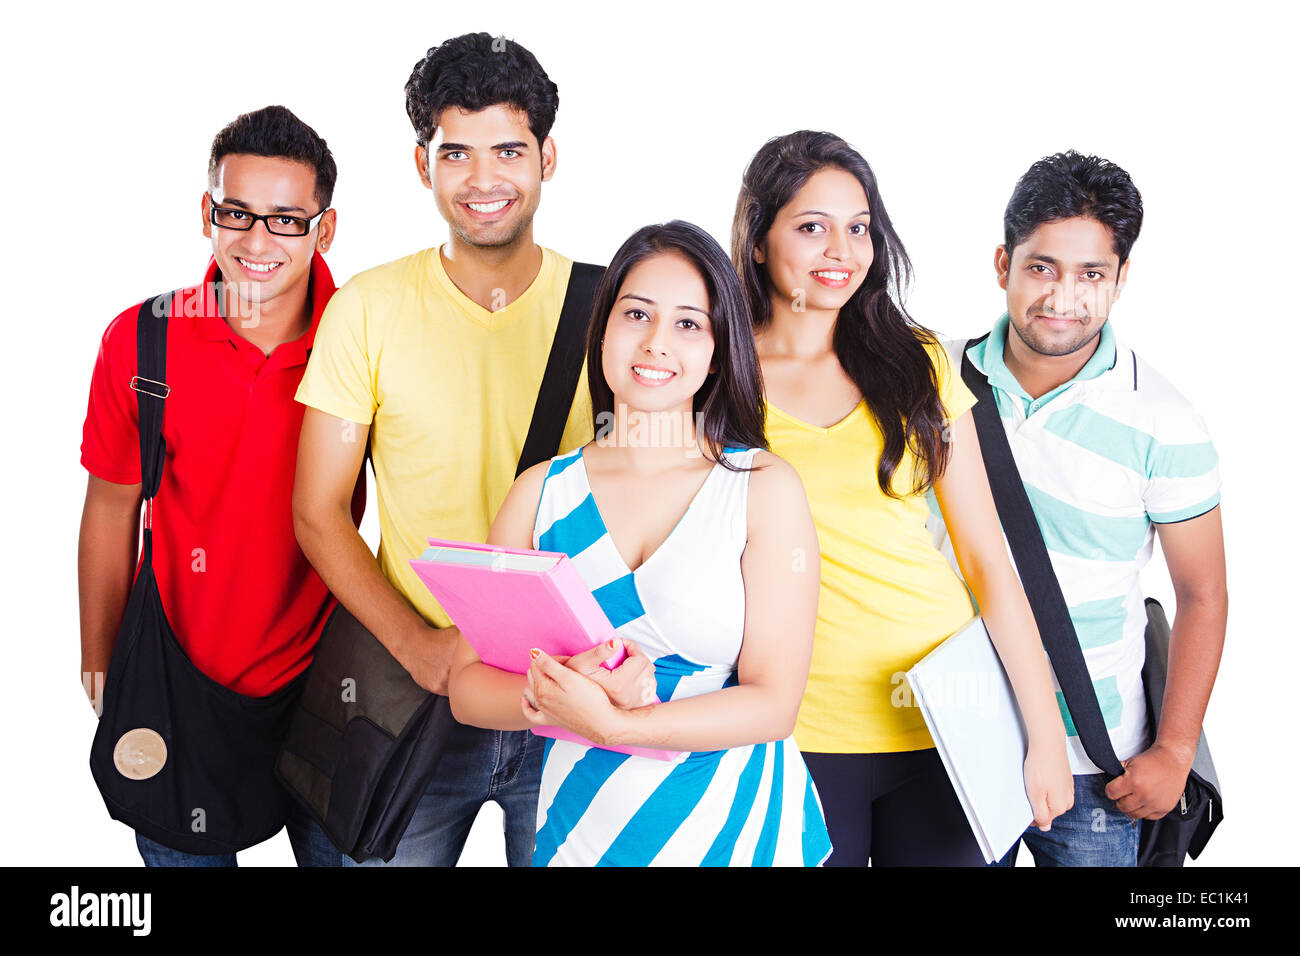 indian college group Friends fun Stock Photo, Royalty Free ...